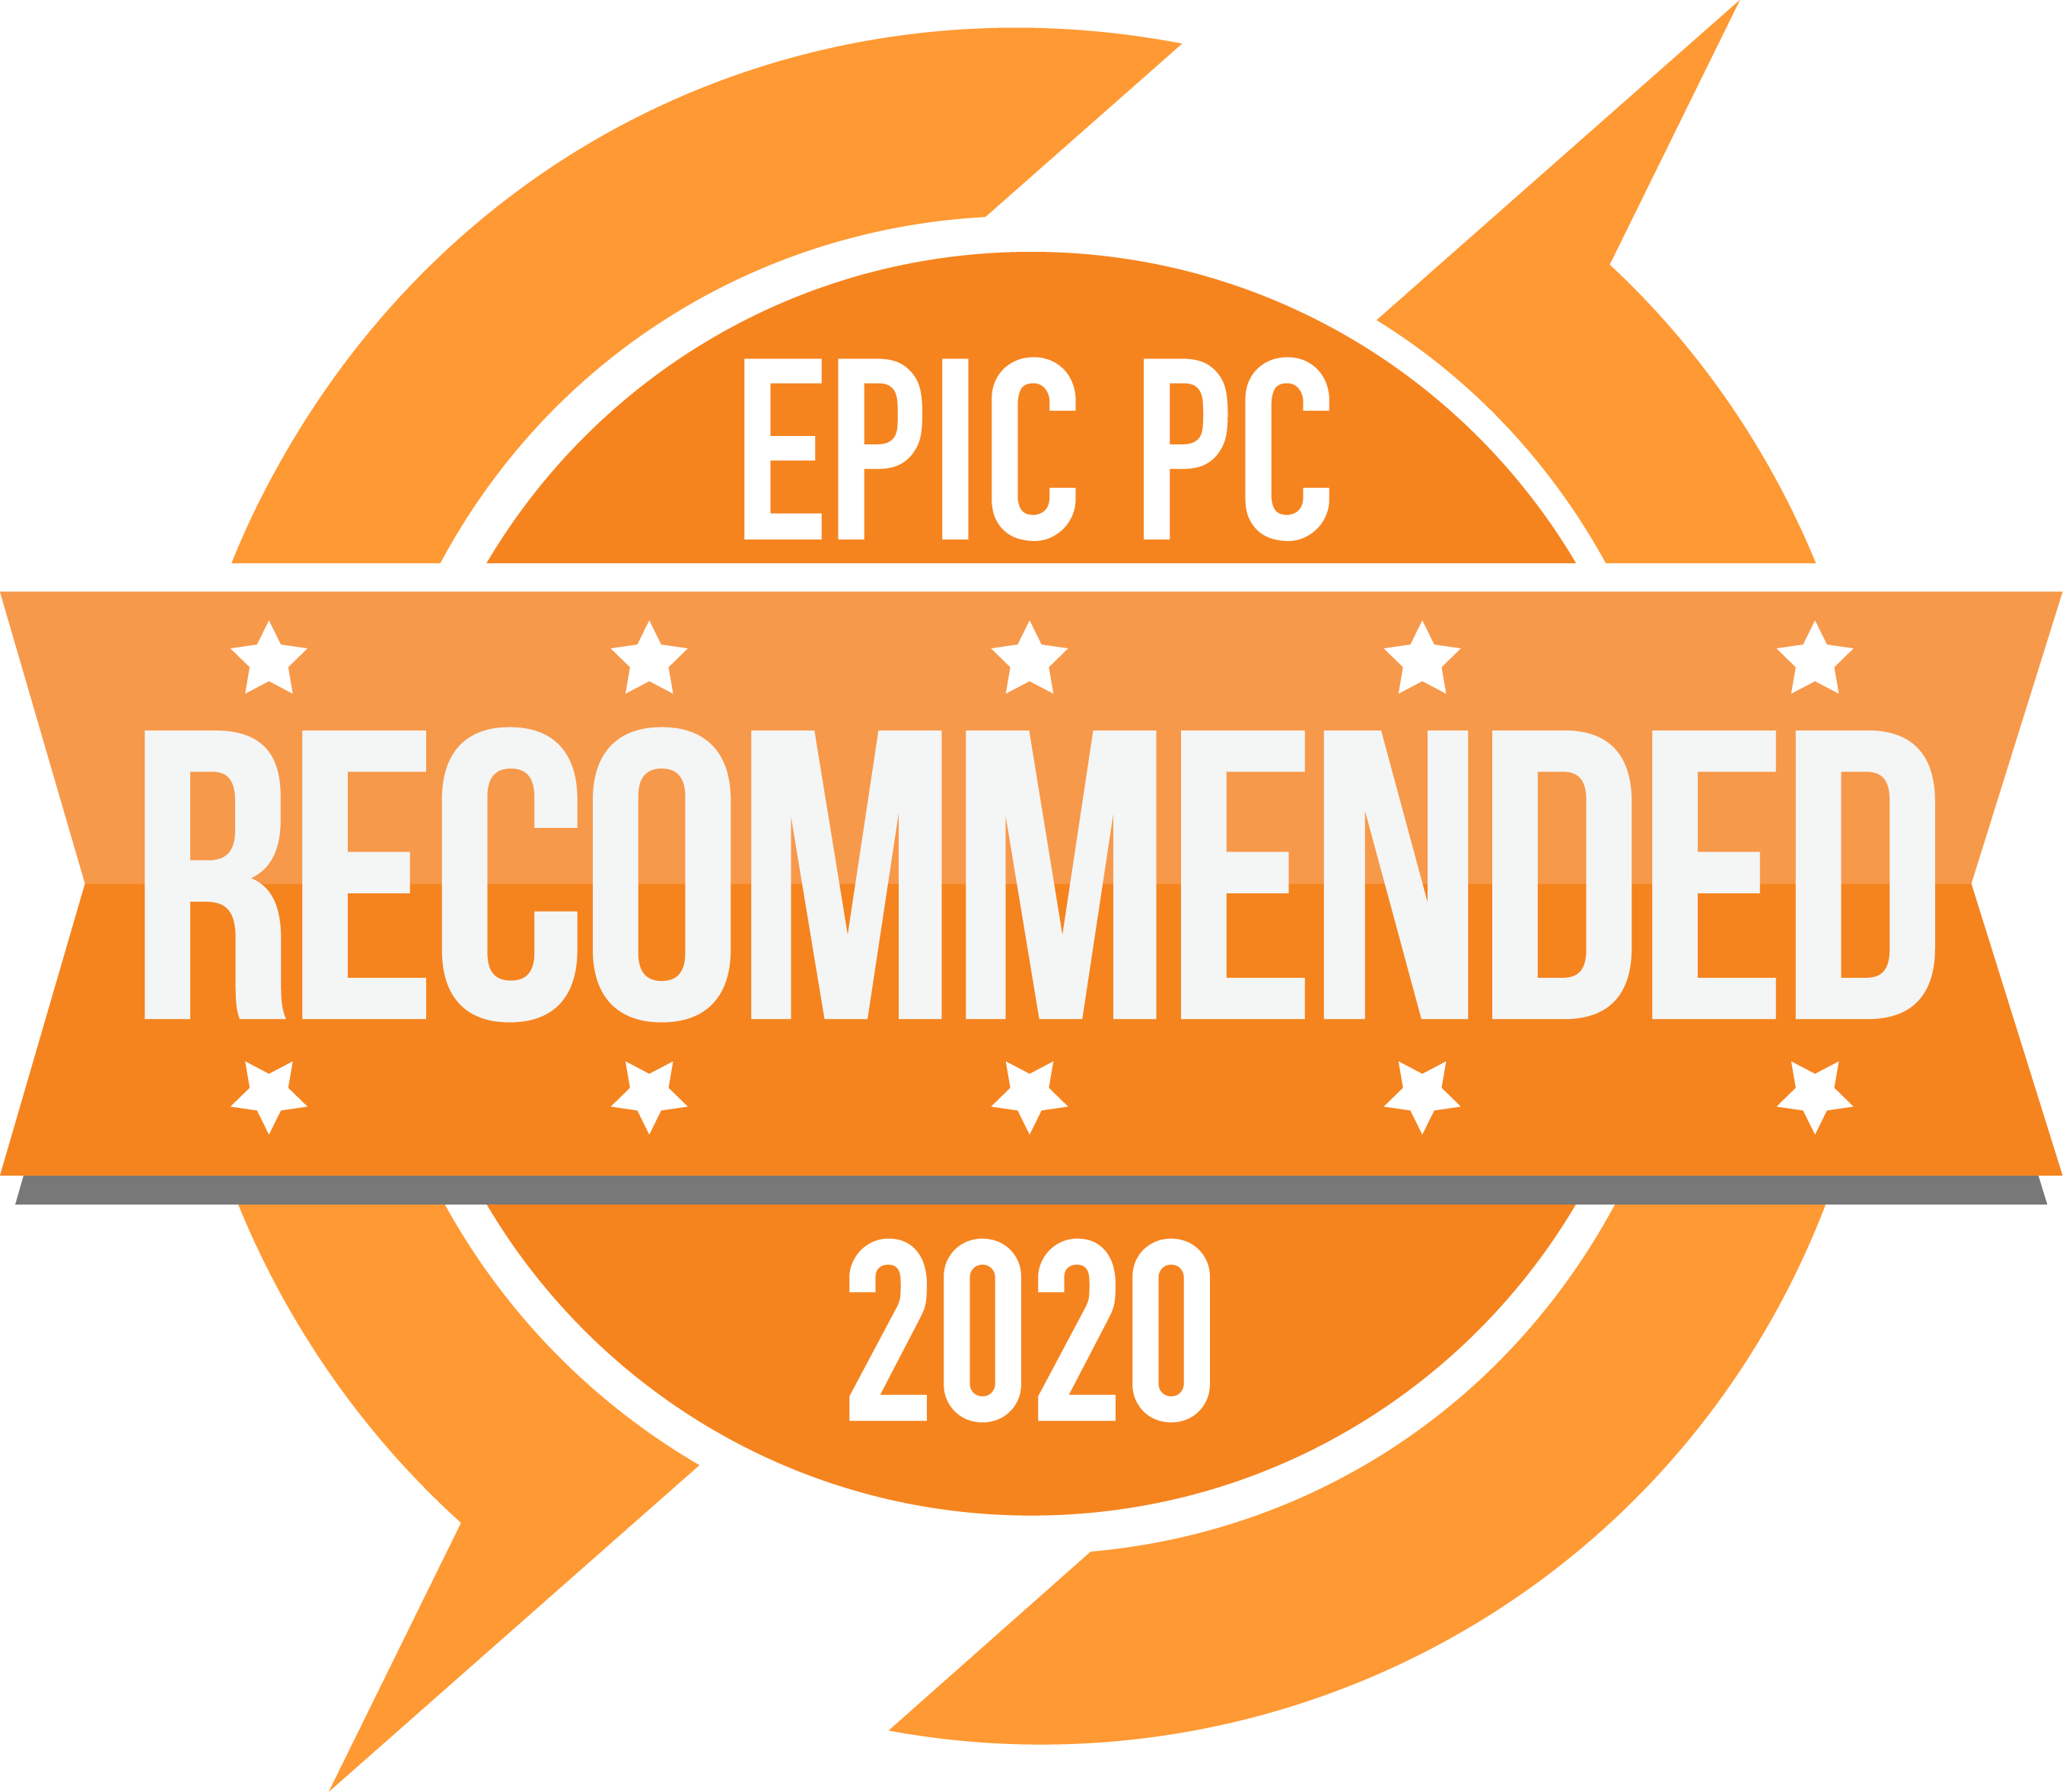 EPIC PC RECOMMENDED AWARD